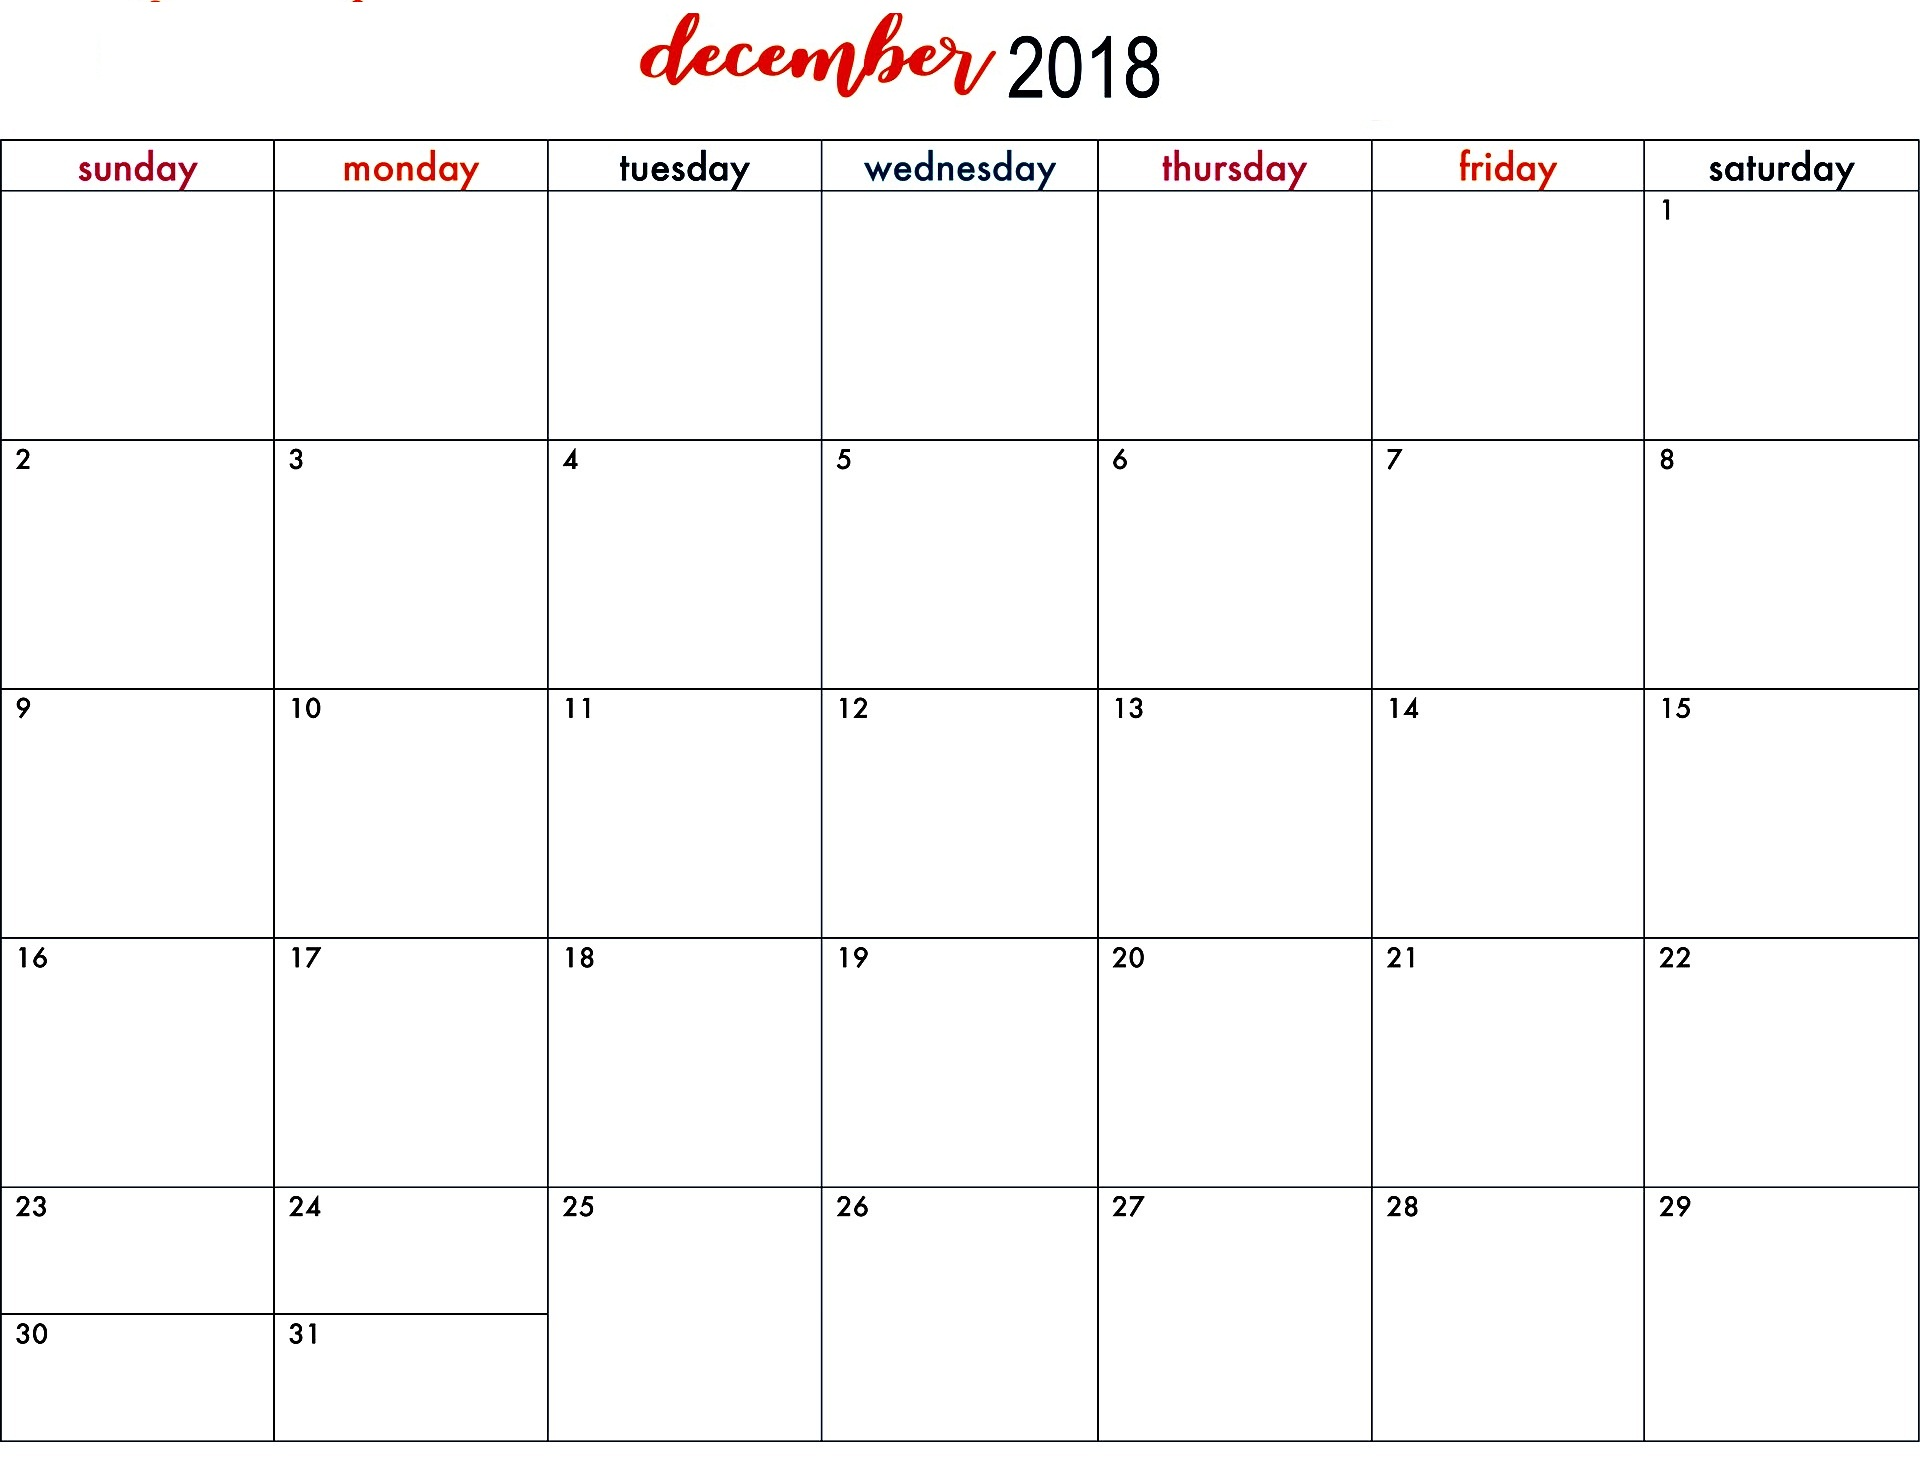 Print December 2018 Calendar With Holidays